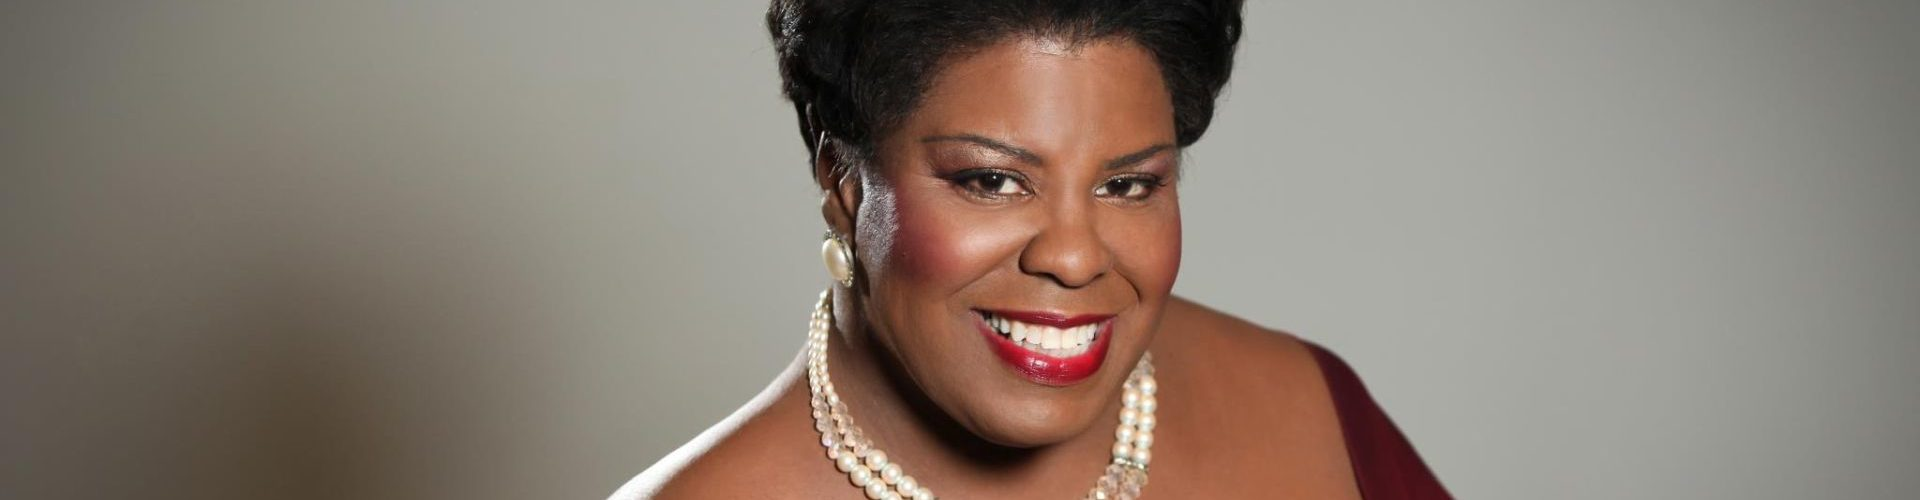 Legends in Concert features acts like Nedgra Culp as Aretha Franklin!